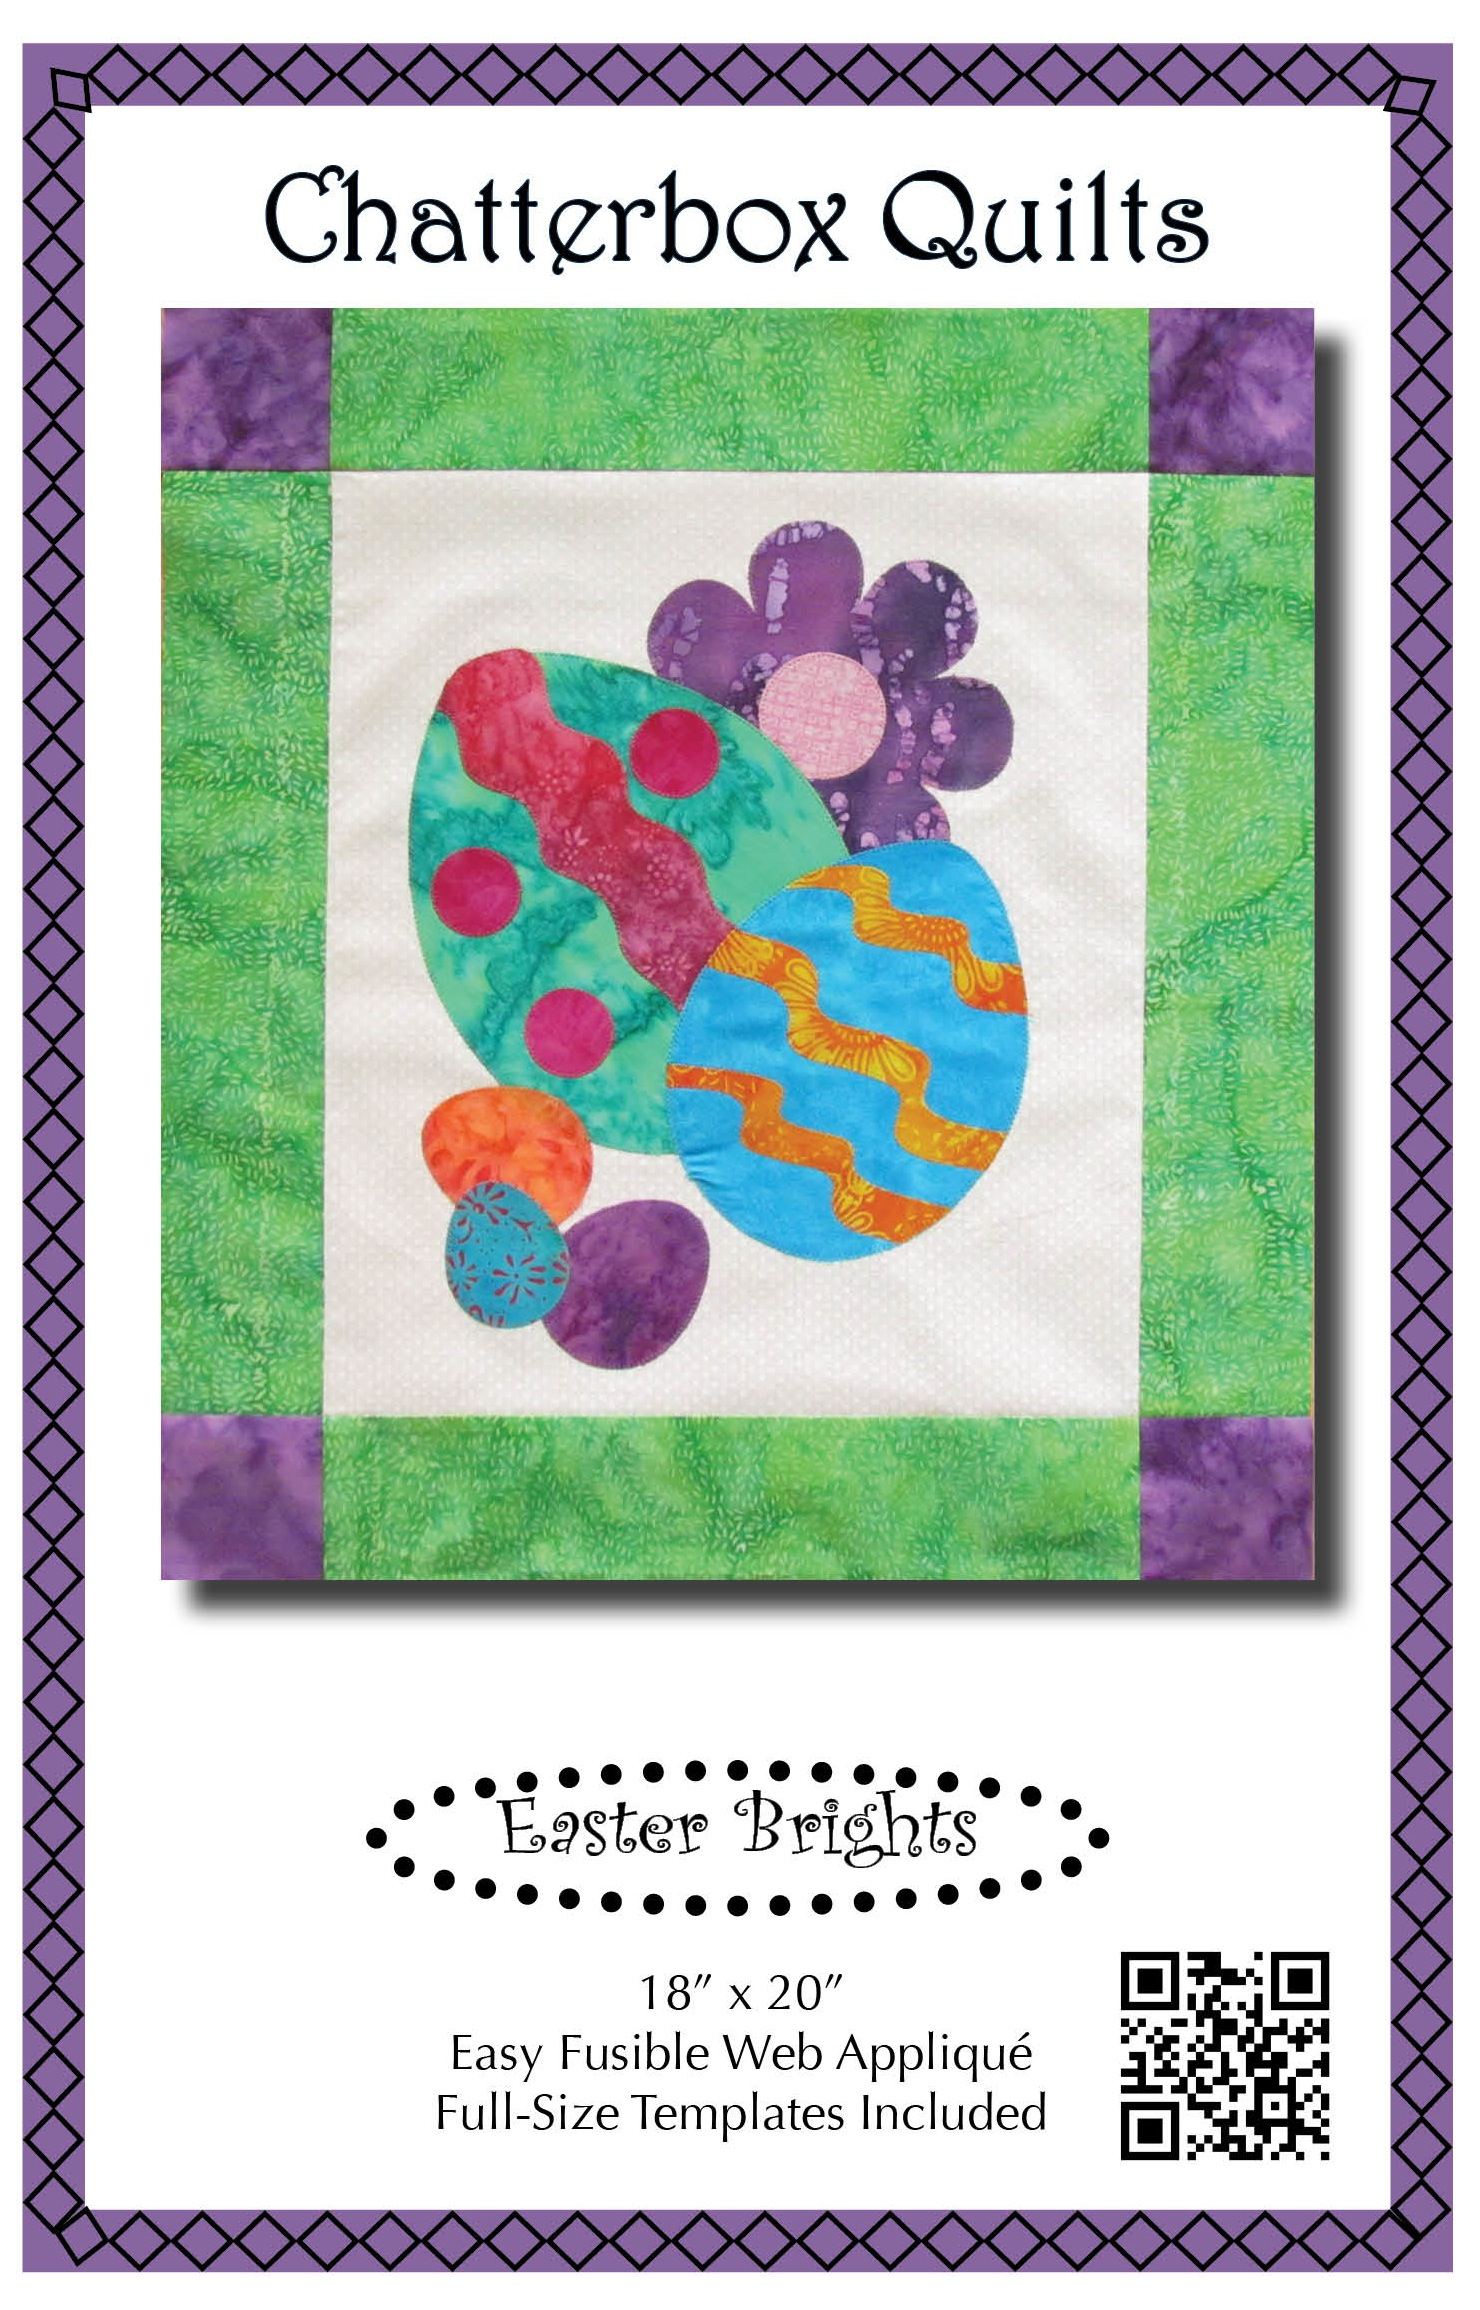 Easter Brights from Chatterbox Quilts